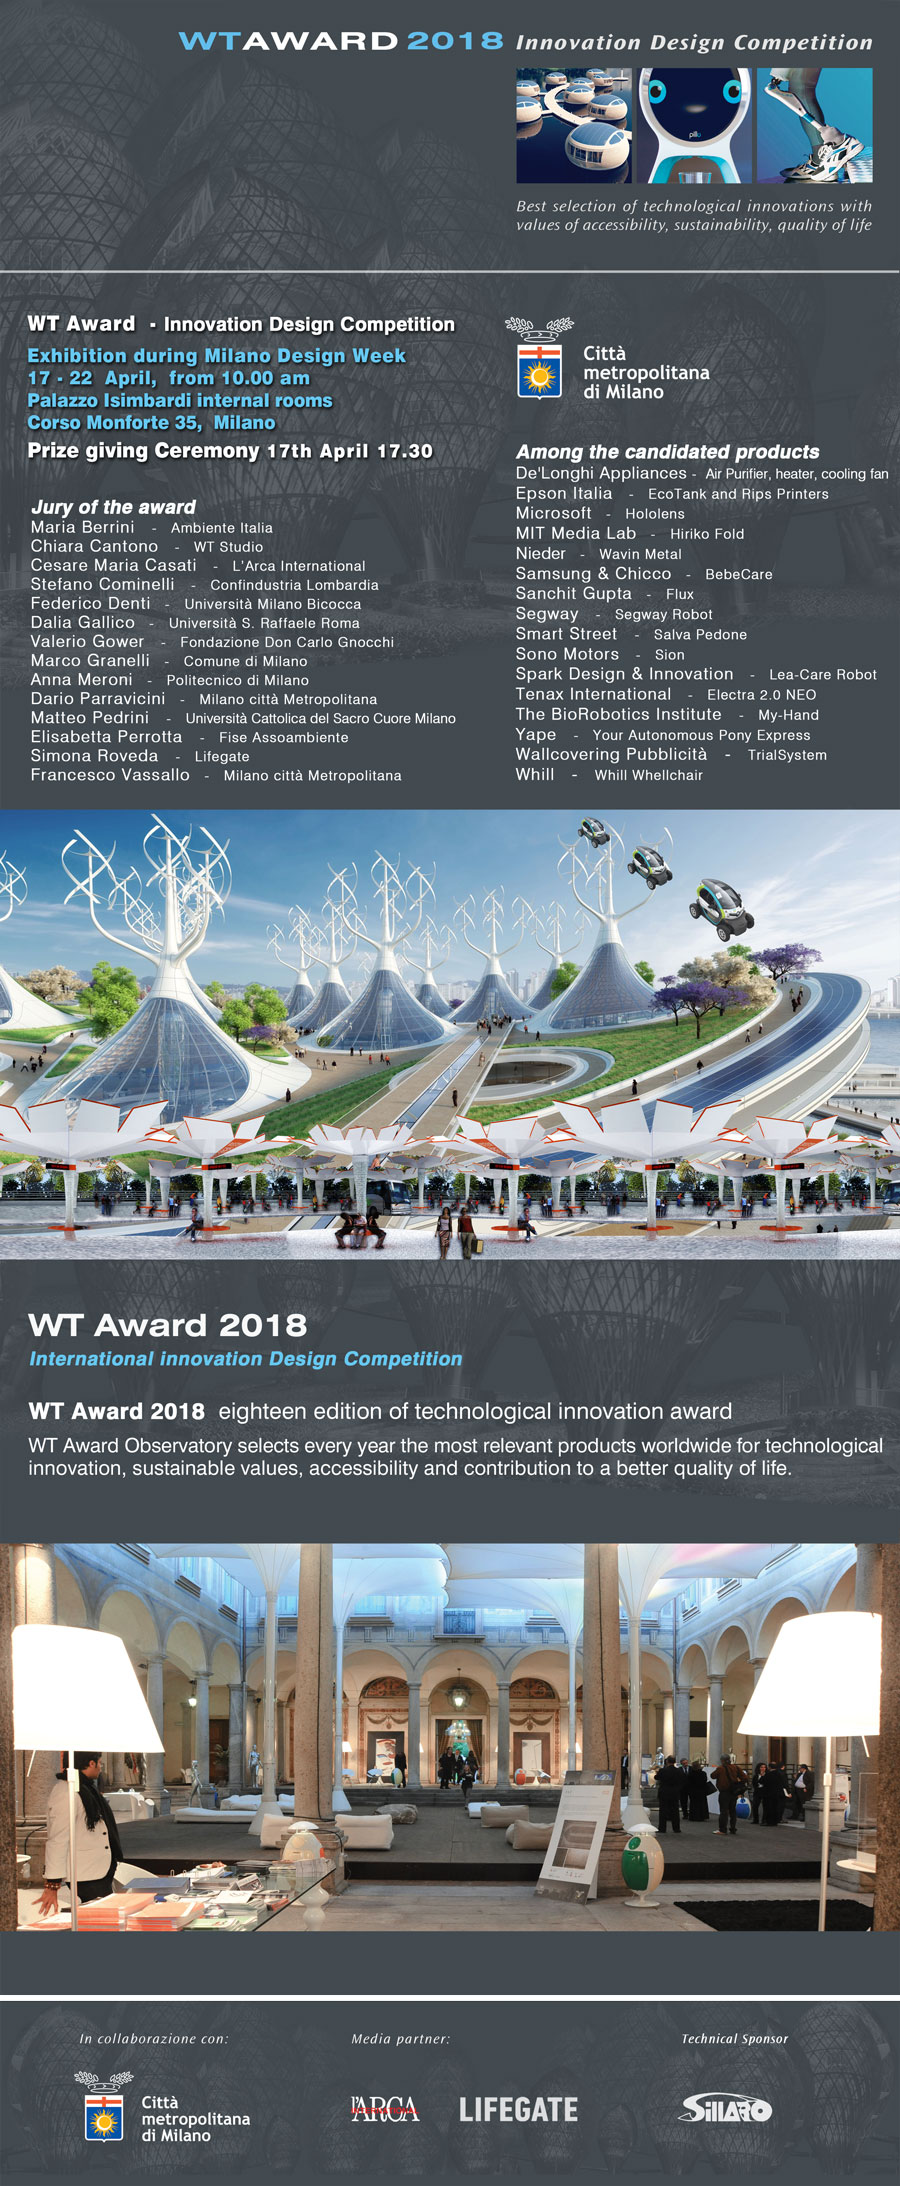 WT Award 2018 Milano Design Week